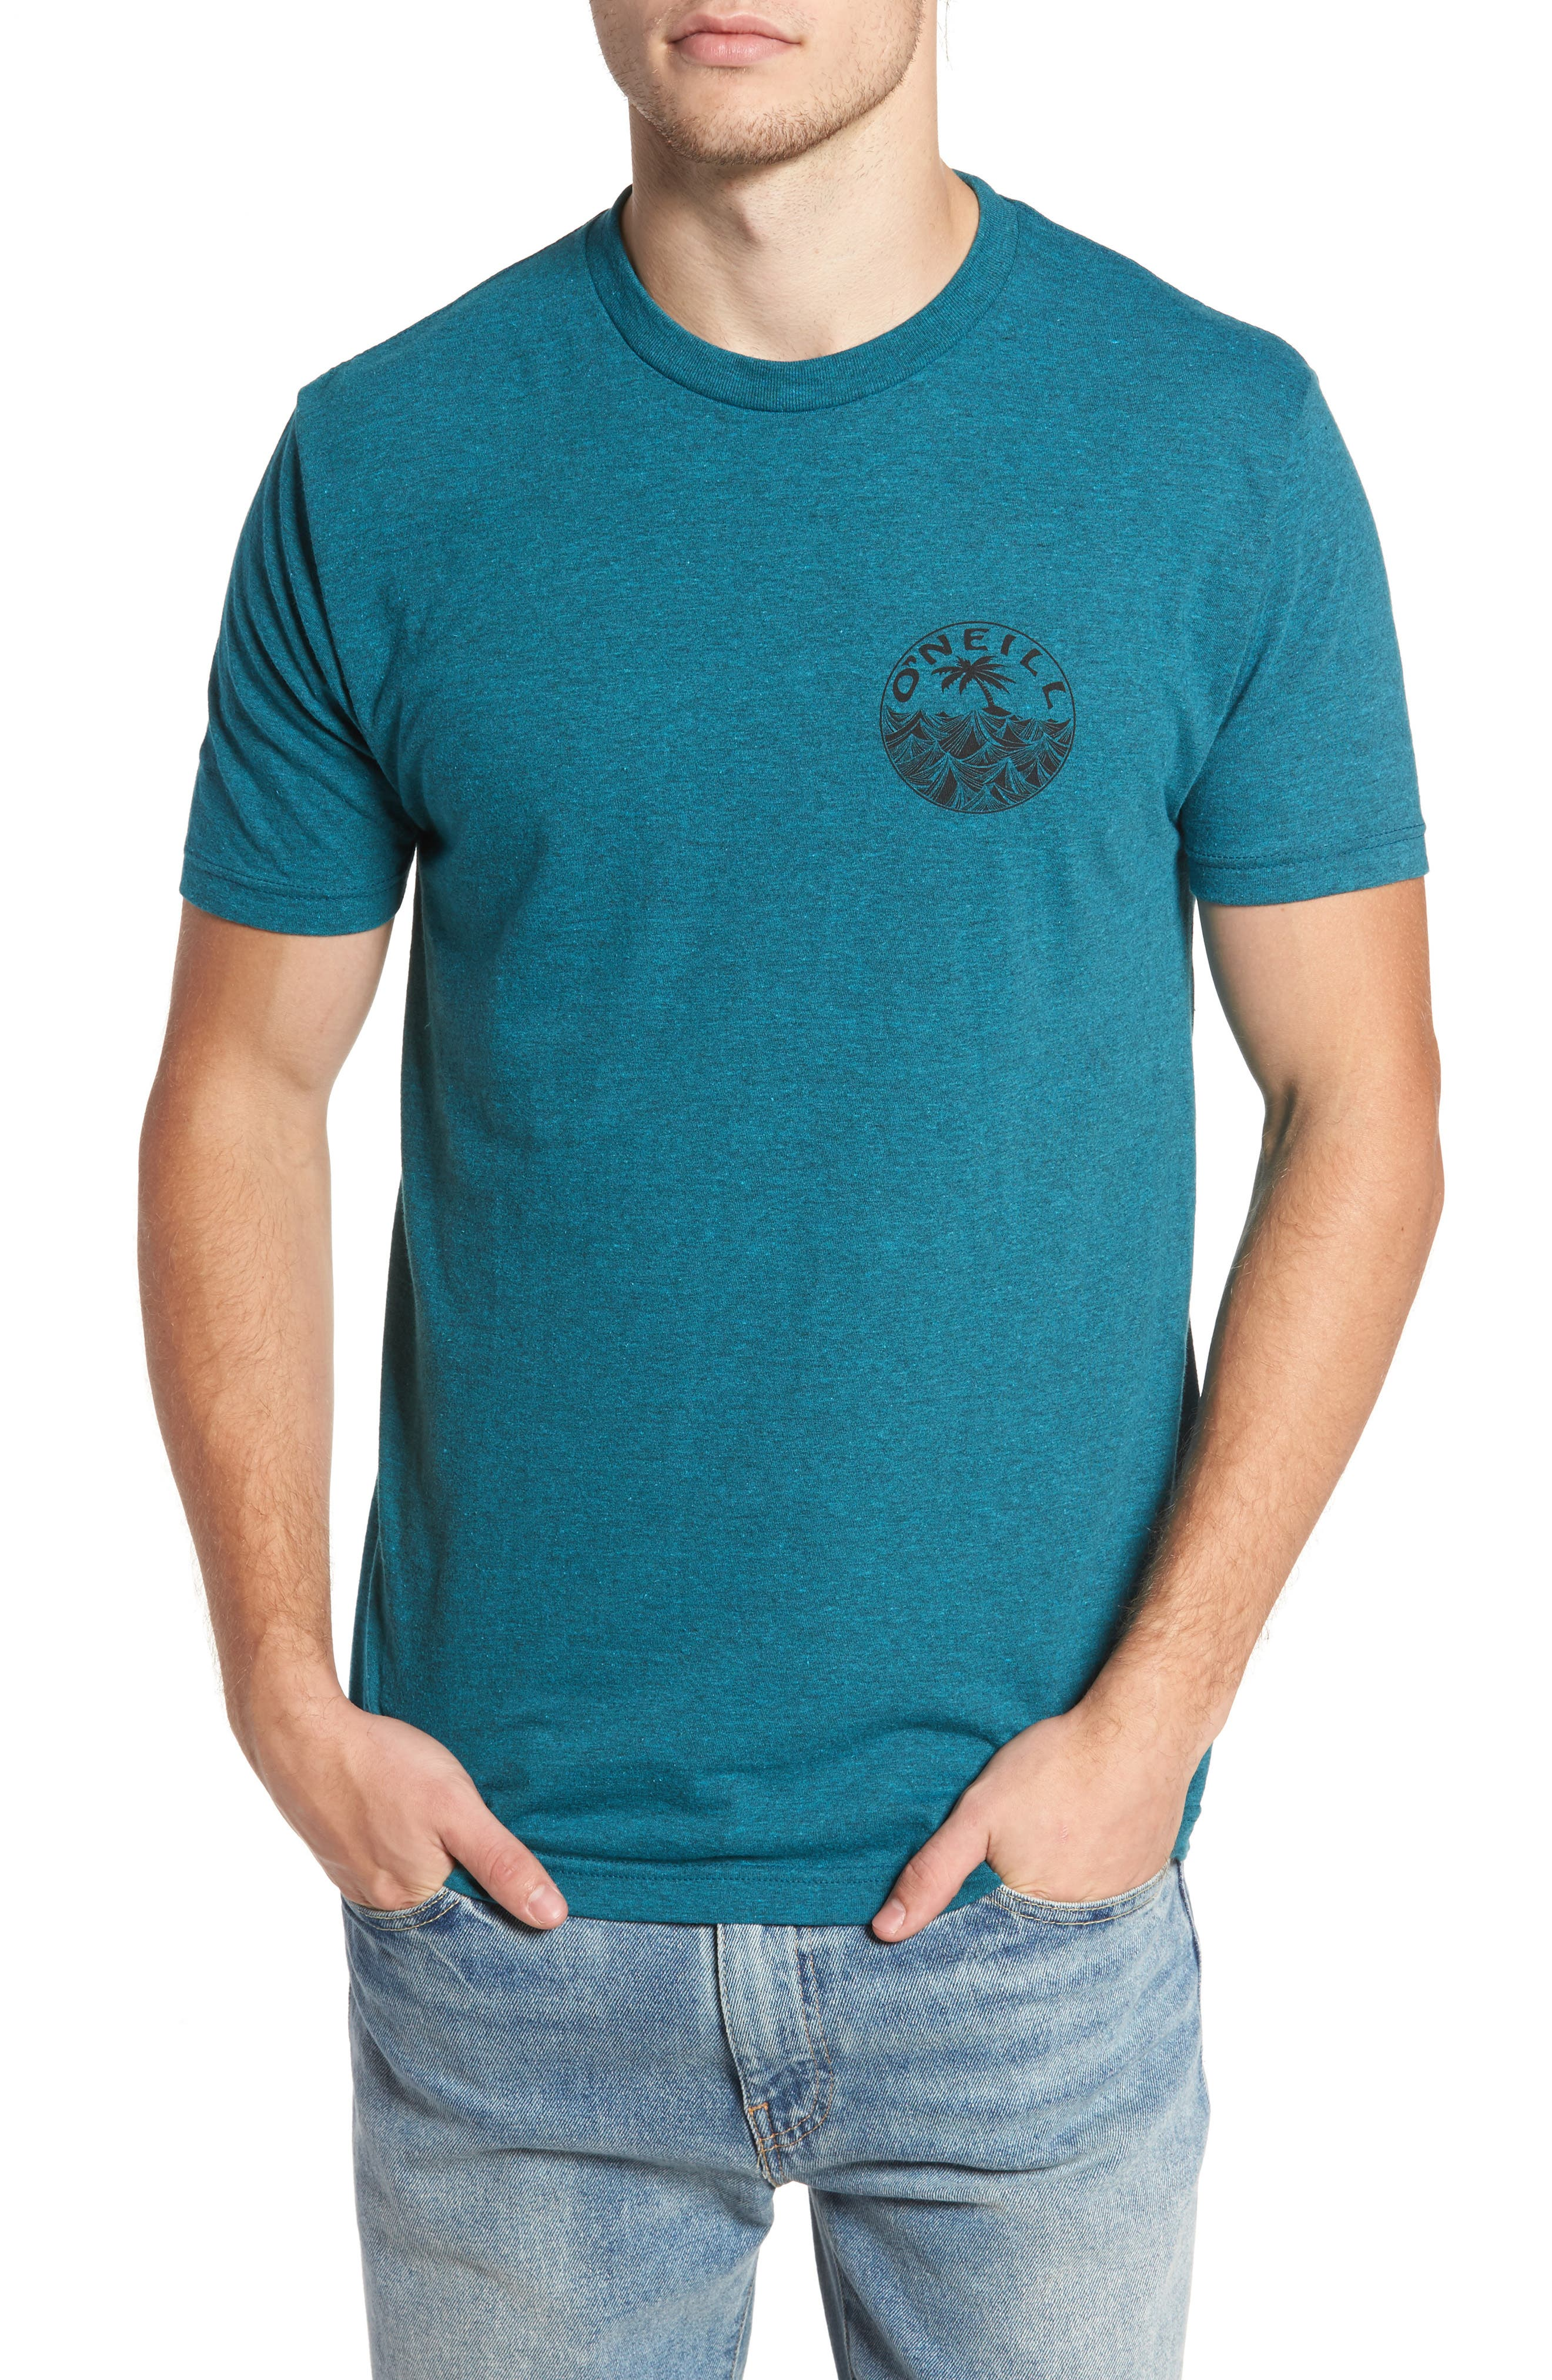 Alternate Image 1 Selected - O'Neill Waver Graphic T-Shirt